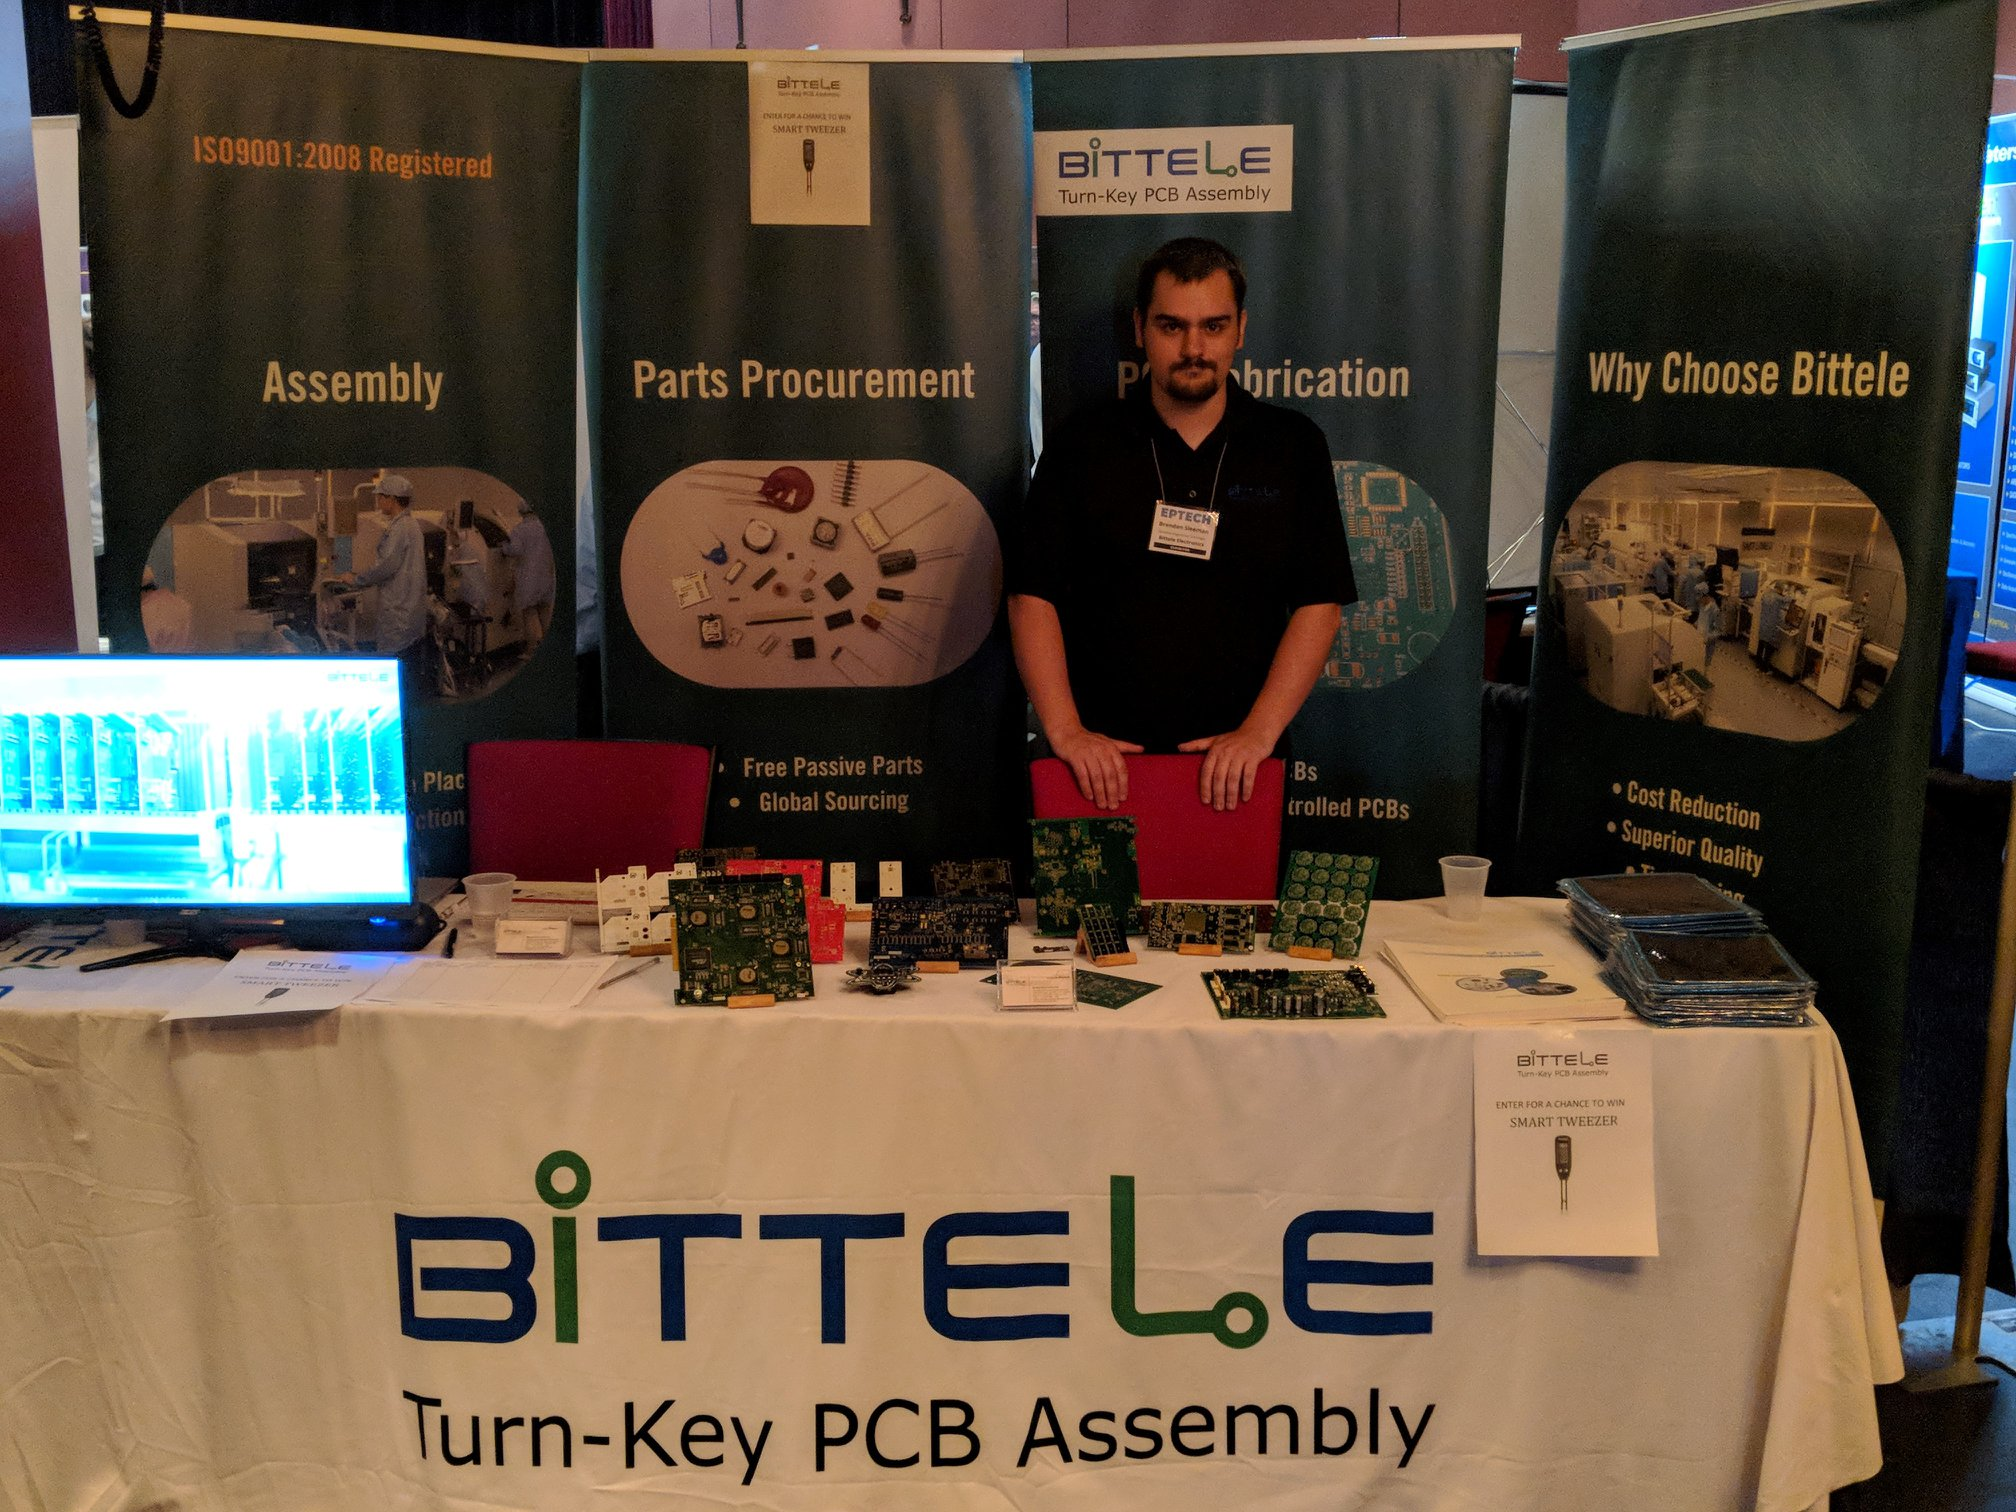 Eptech 2018 Bittele Electronics Contract Service Printed Circuit Board Assembly On Global Sources About